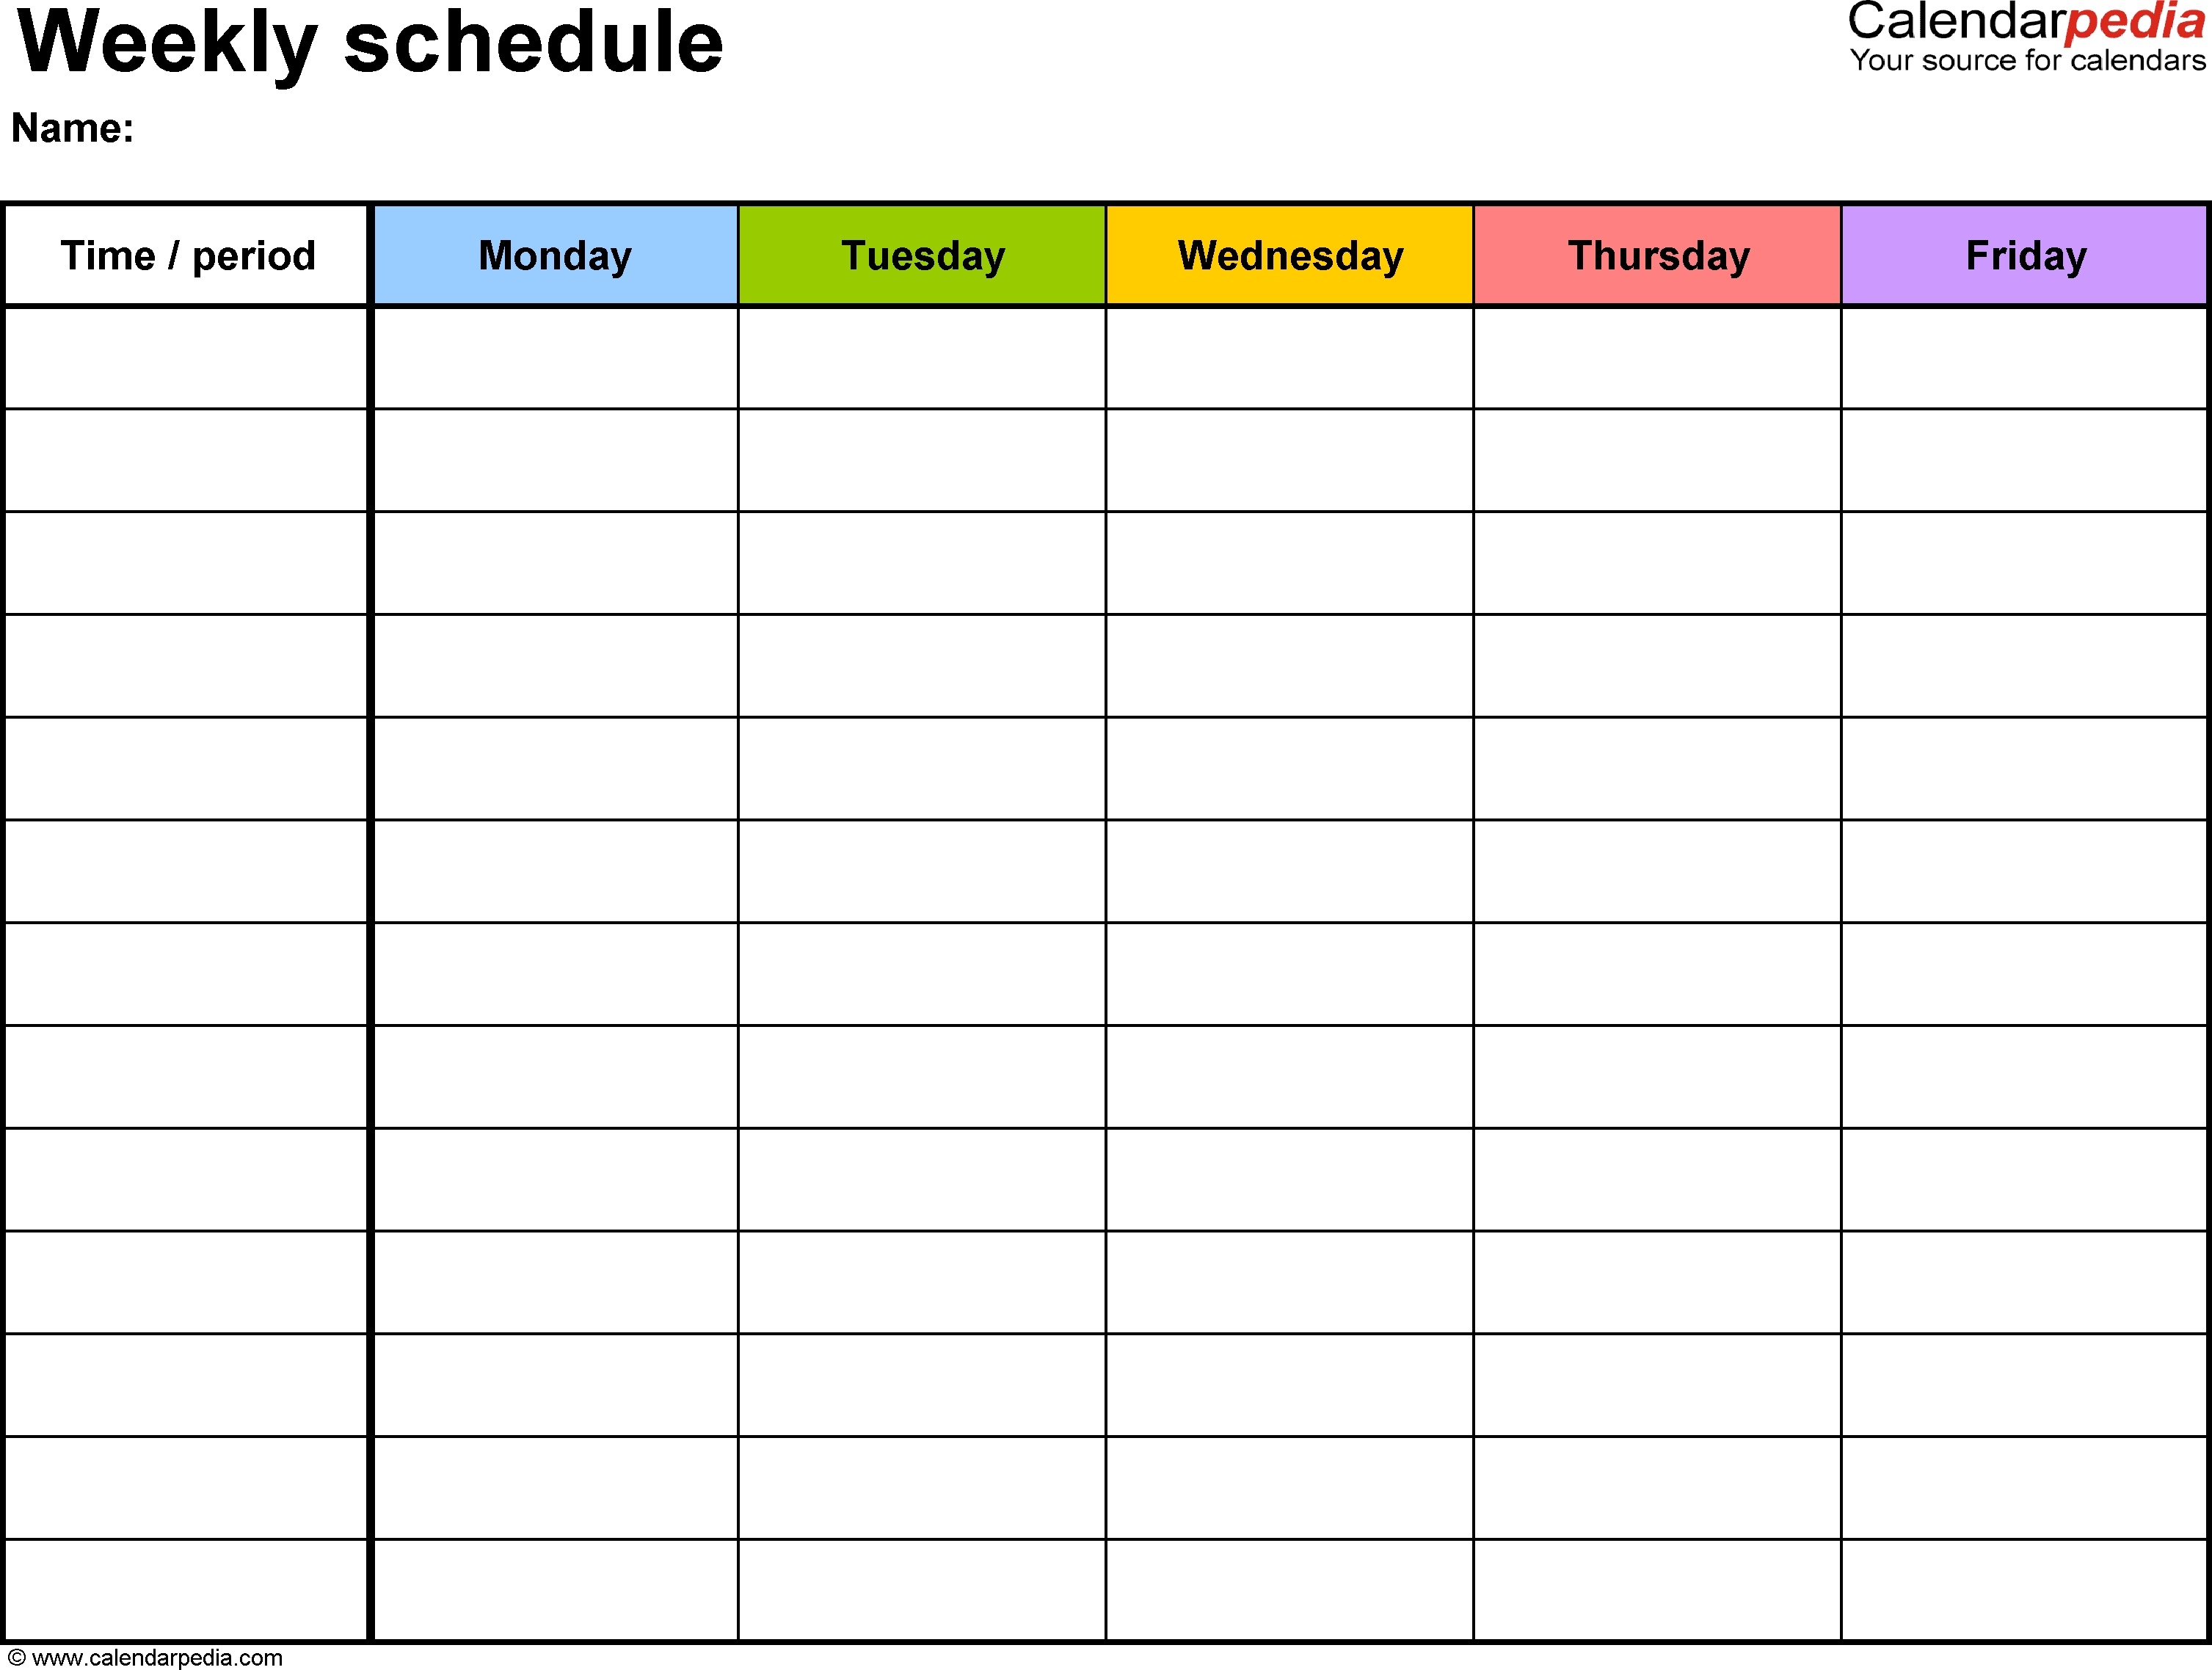 Free Weekly Schedule Templates For Word - 18 Templates for Monday Through Friday Daily Planner